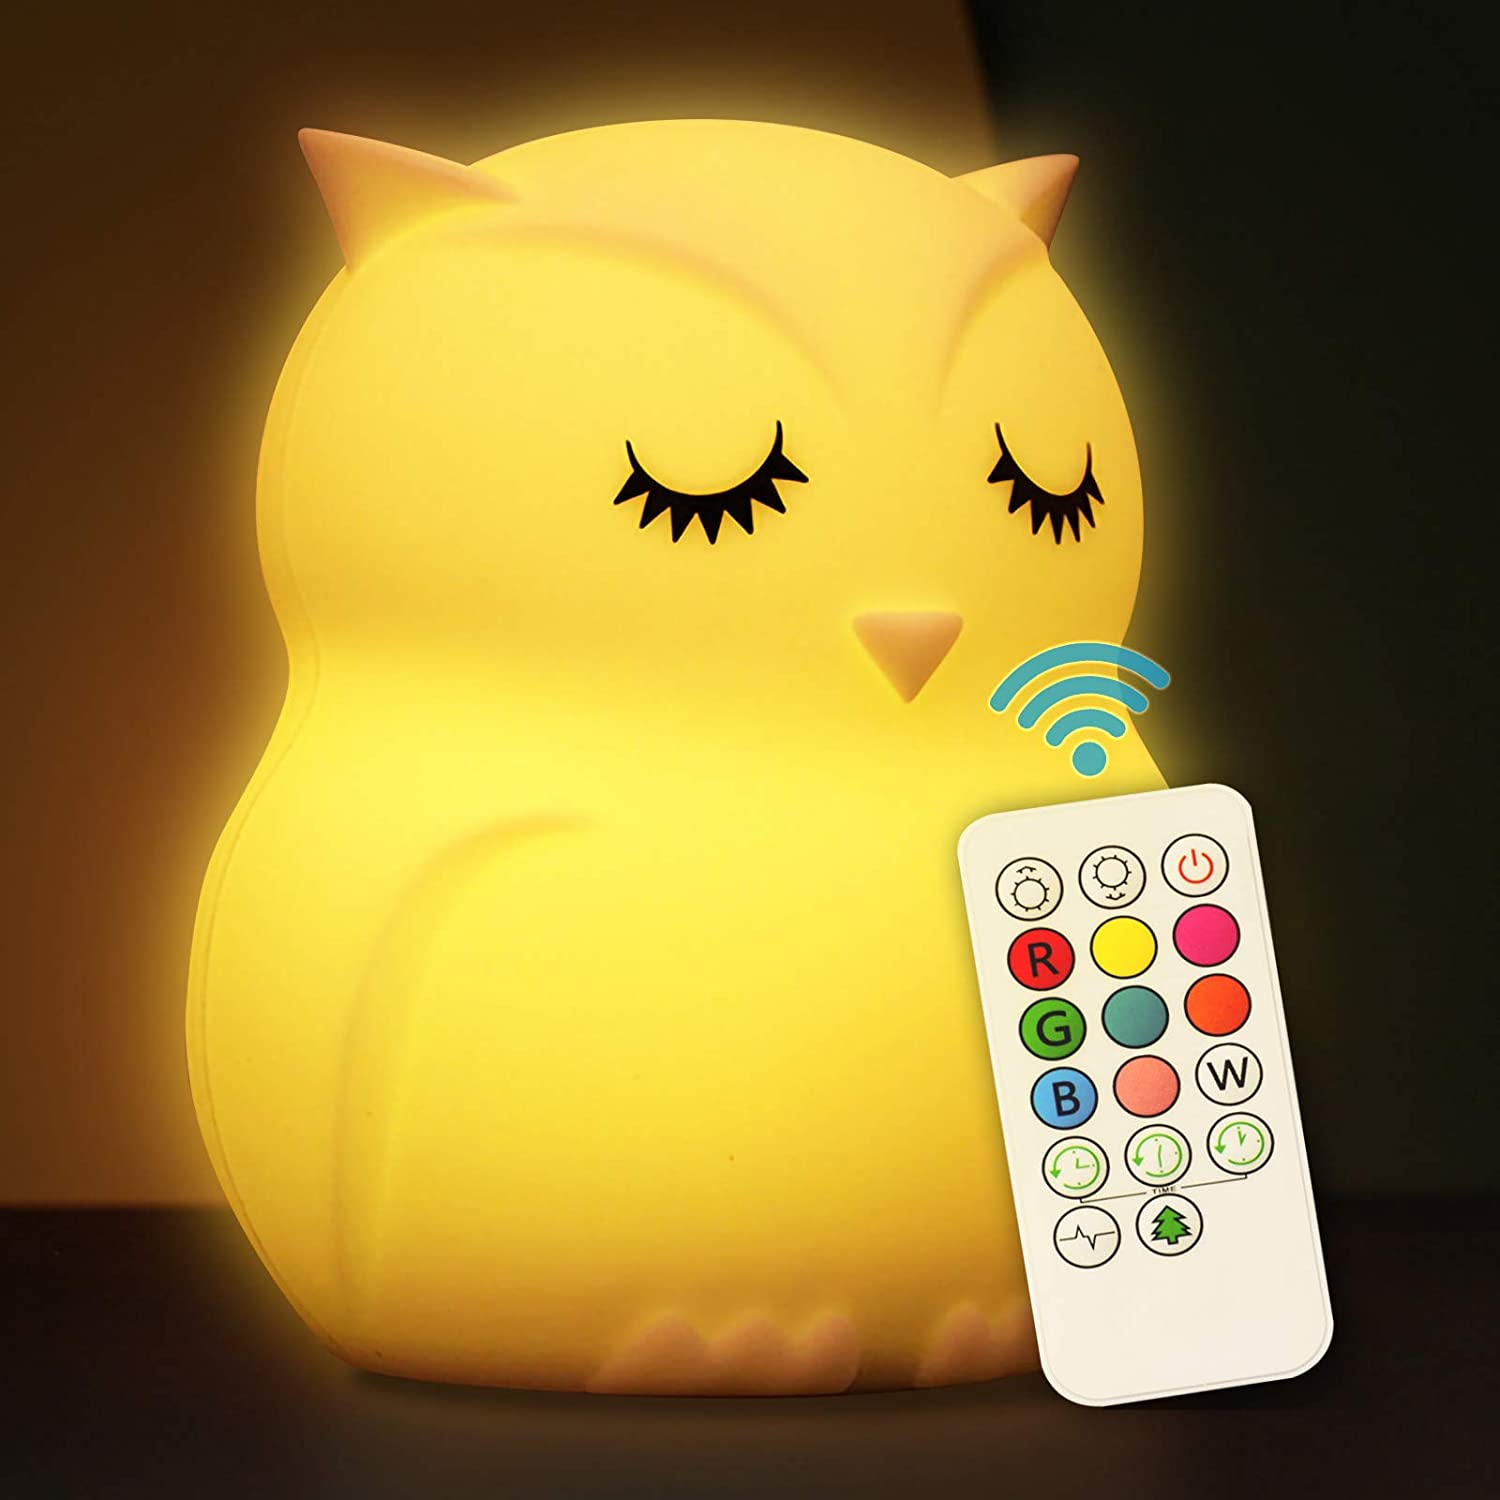 Cute Night Light for Kids Soft Silicone Baby Nursery Night Light with Remote Control Children Bed Room Décor Decoration Teenage Toddler Boys Girls Birthday Gift (Owl)